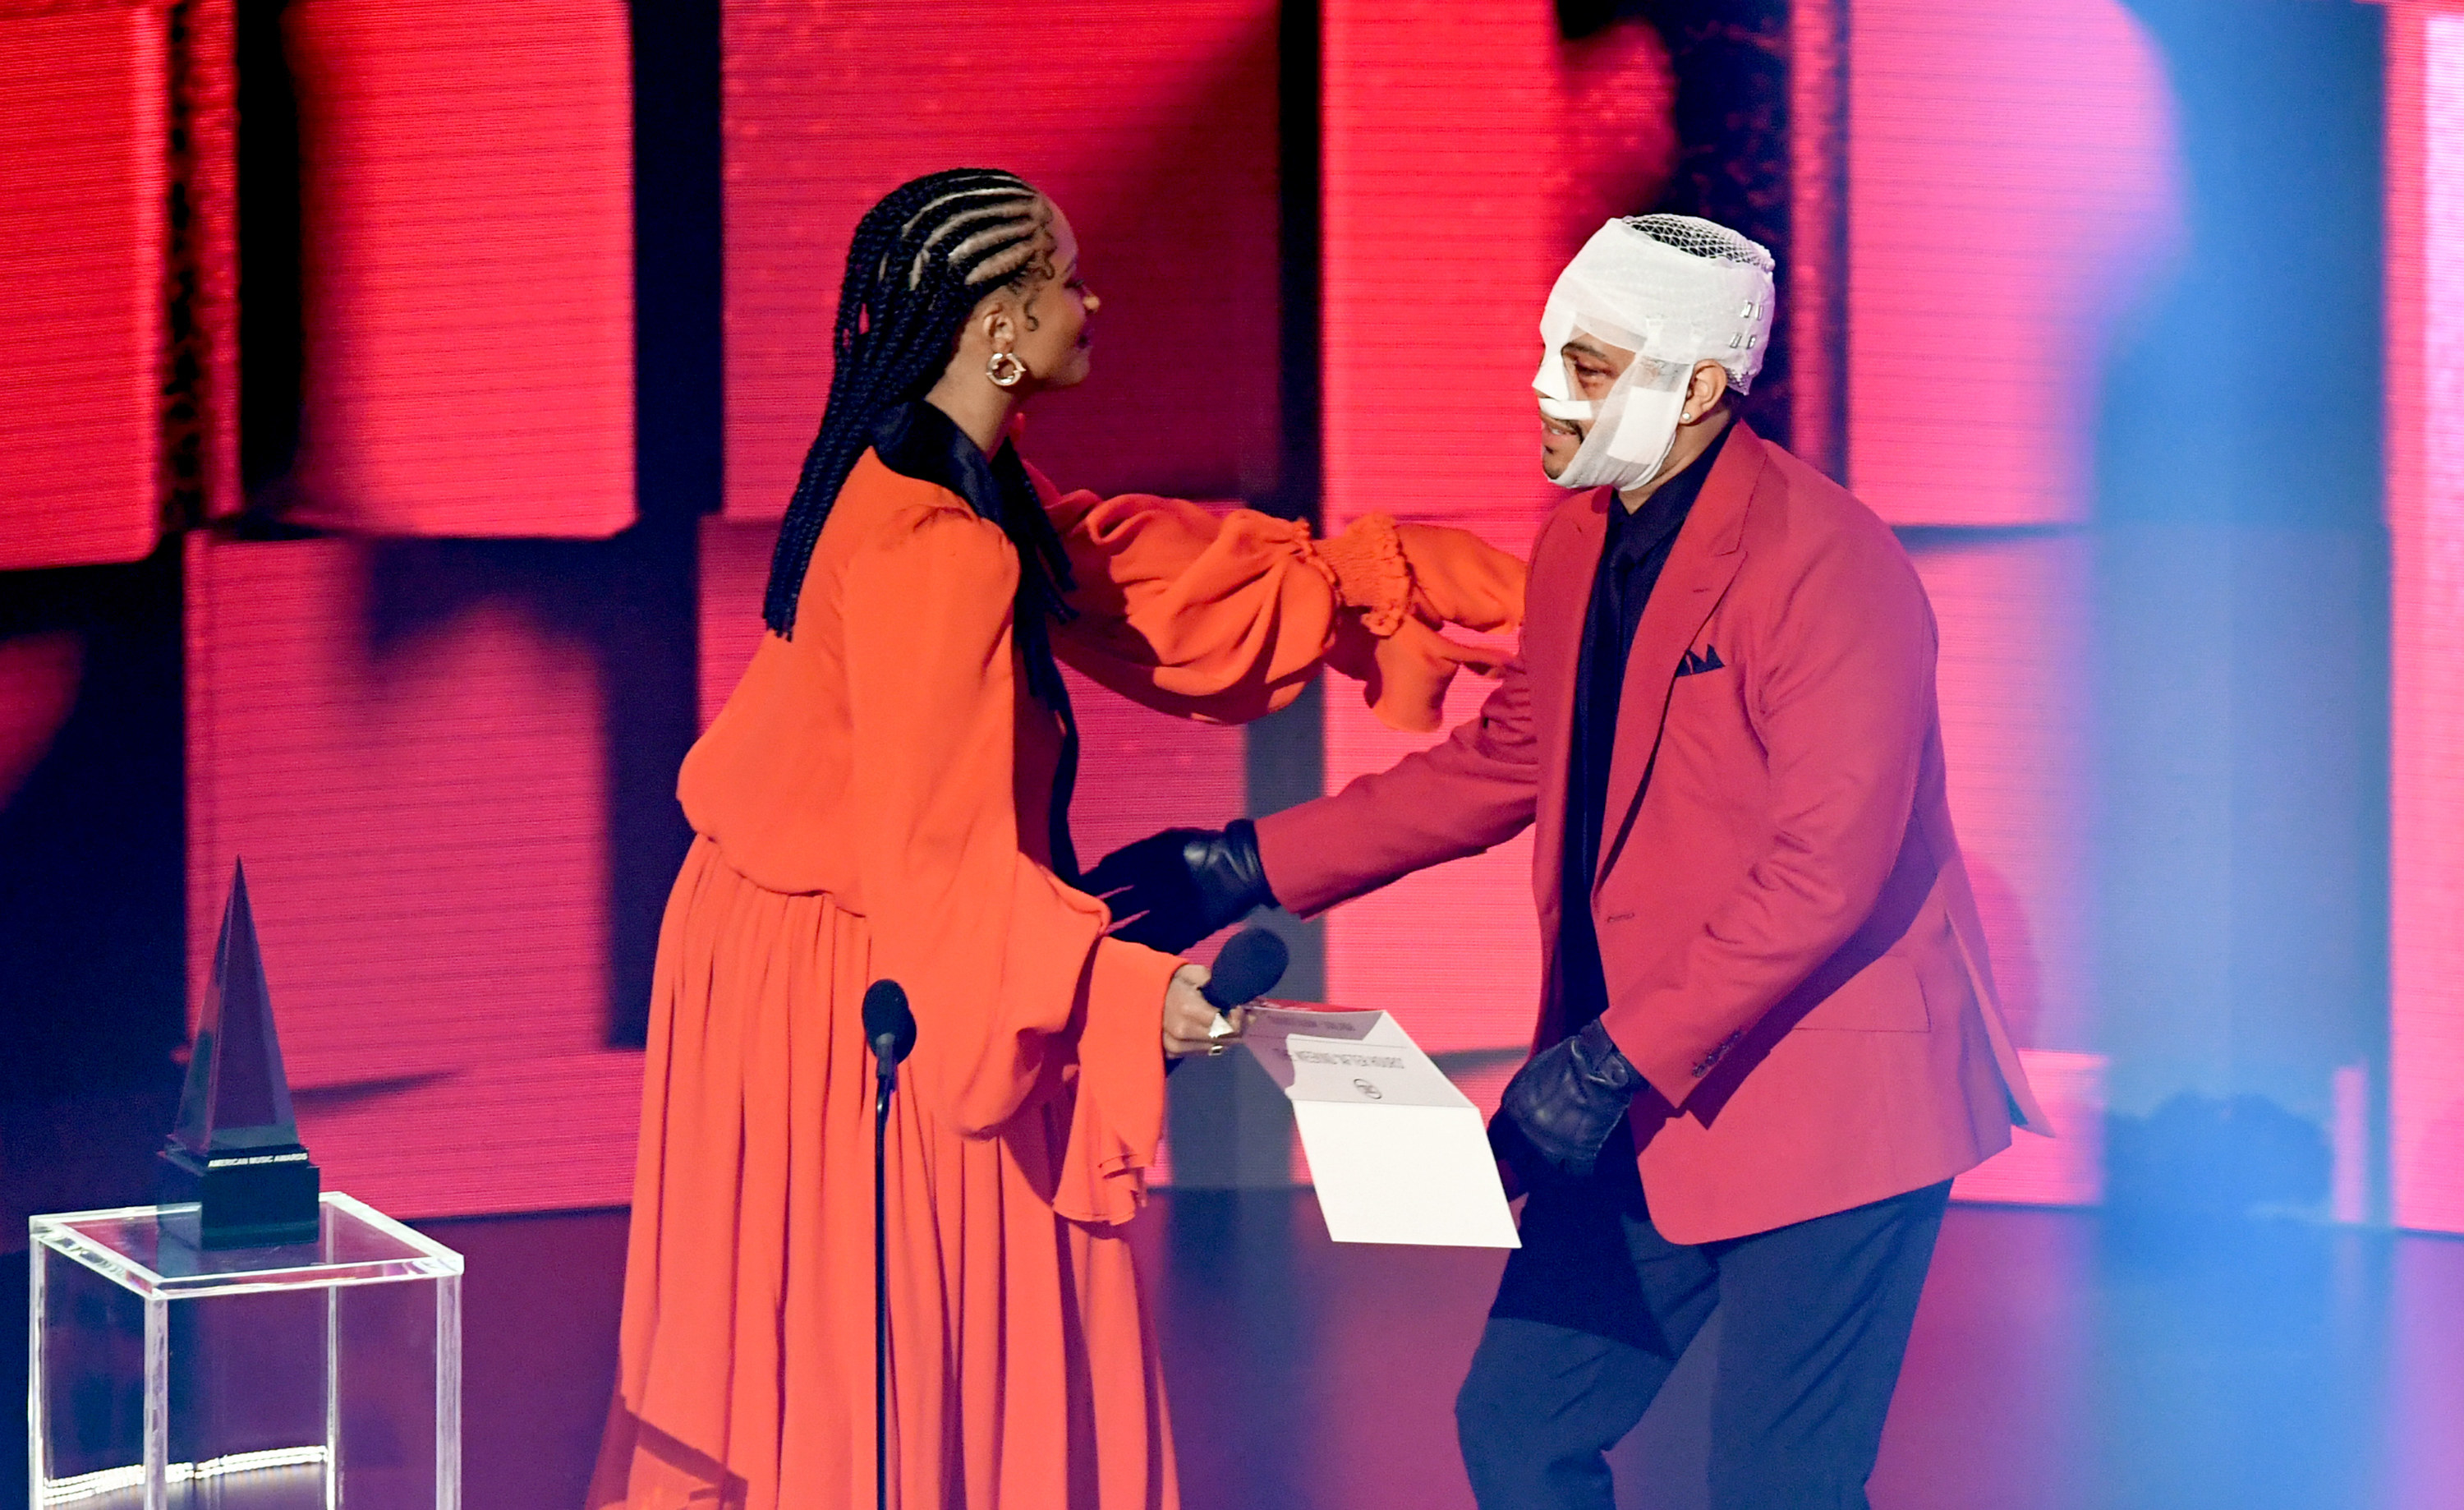 The Weeknd accepts an award from Ciara at the 2020 American Music Awards